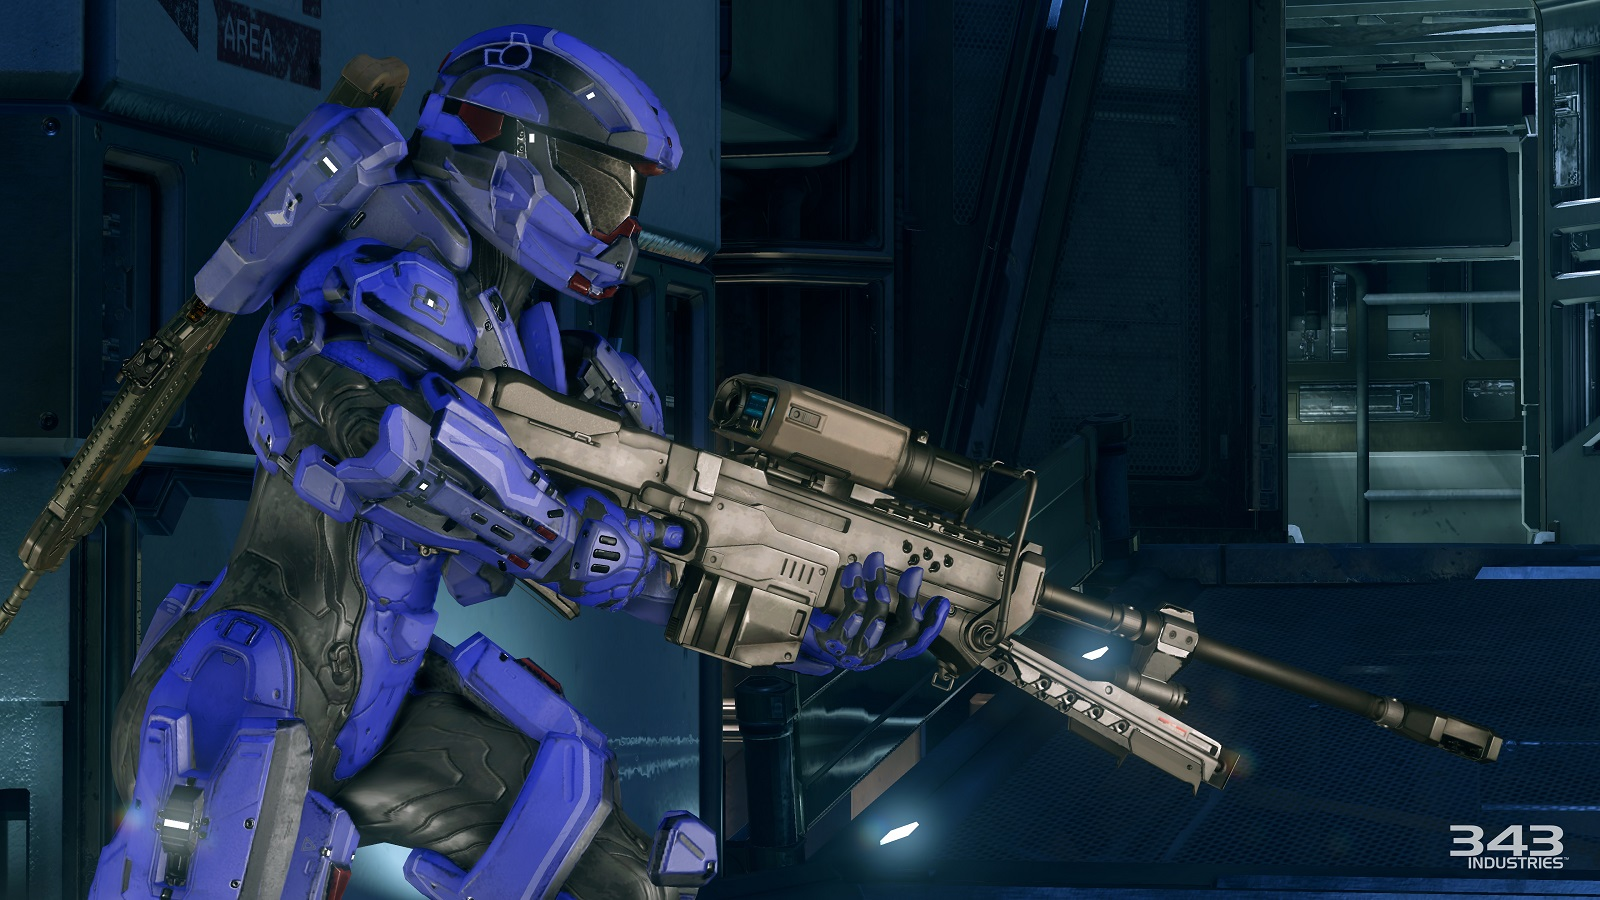 Halo 5: Guardians multiplayer beta: hands-on impressions ...